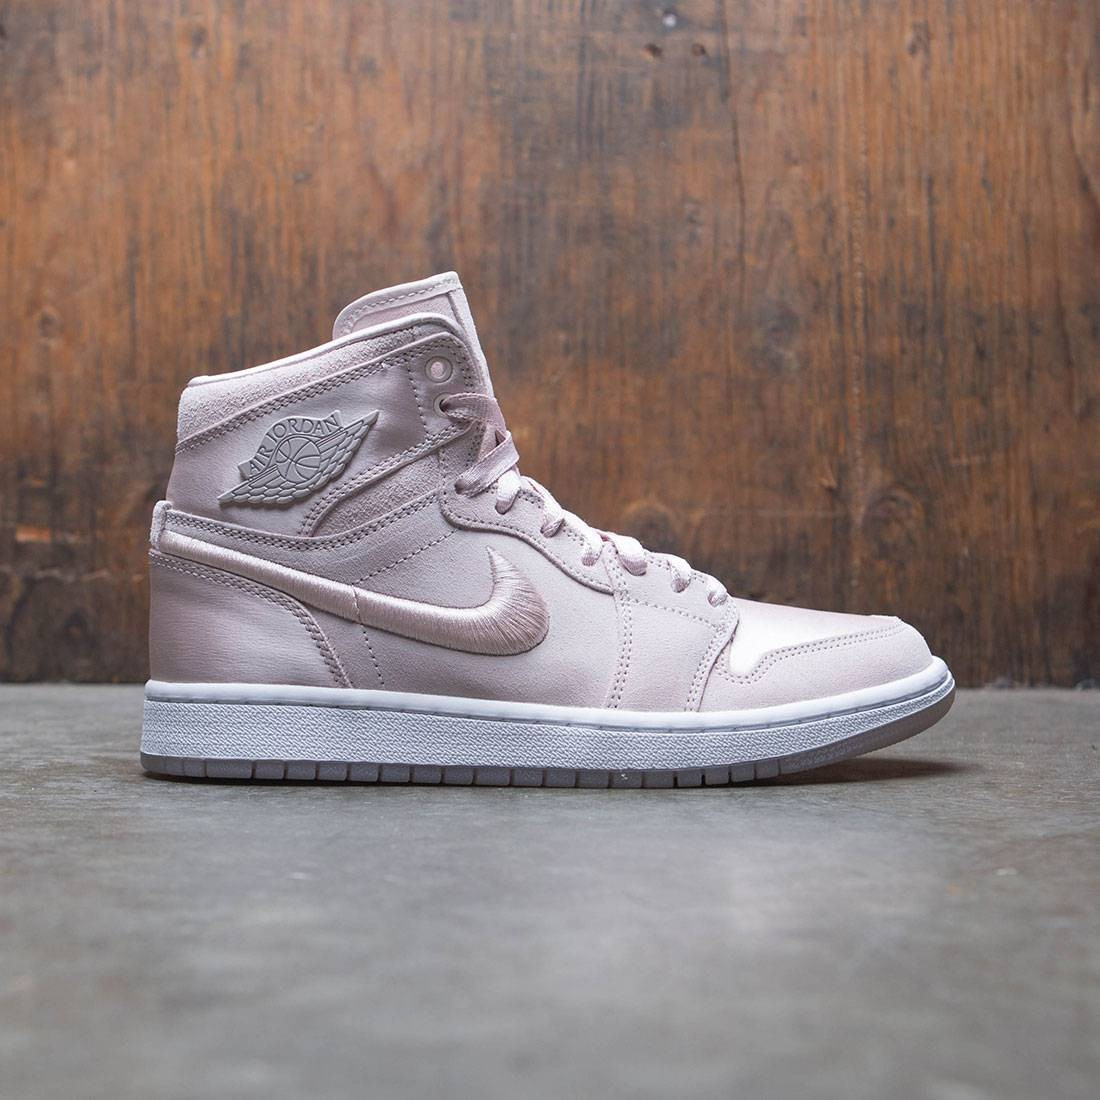 jordan women air jordan 1 retro high summer of high silt red white metallic  gold 0ab3e48d76